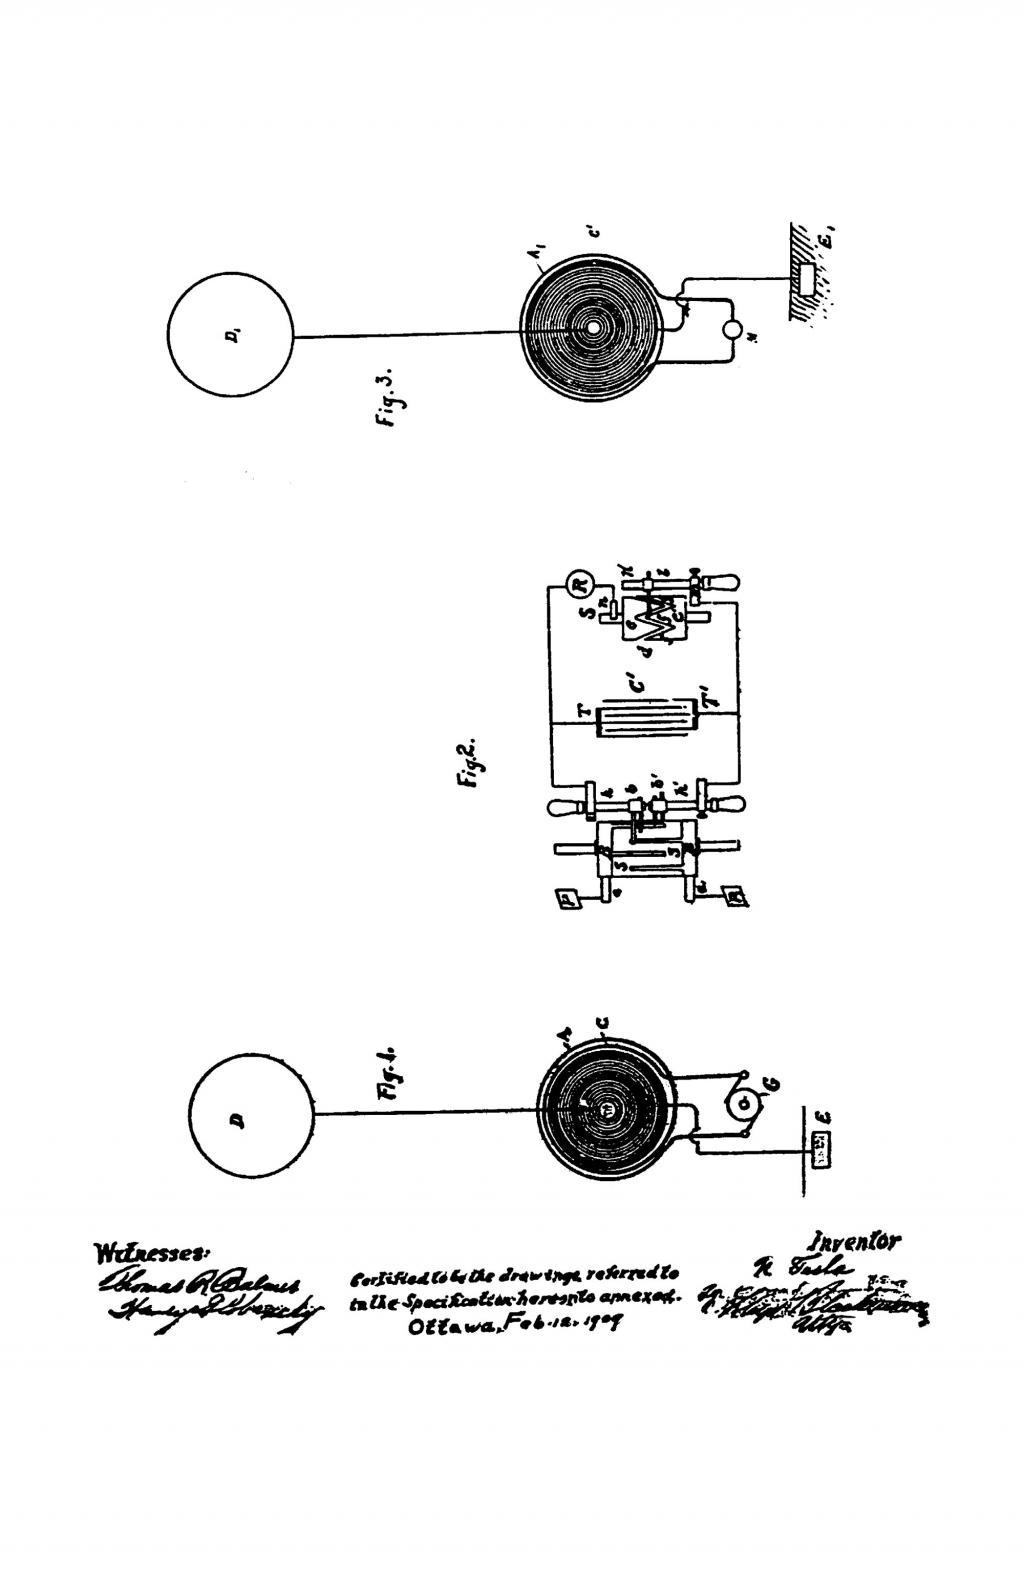 Nikola Tesla Canadian Patent 142352 - Art of Transmitting Electrical Energy through the Natural Mediums - Image 1